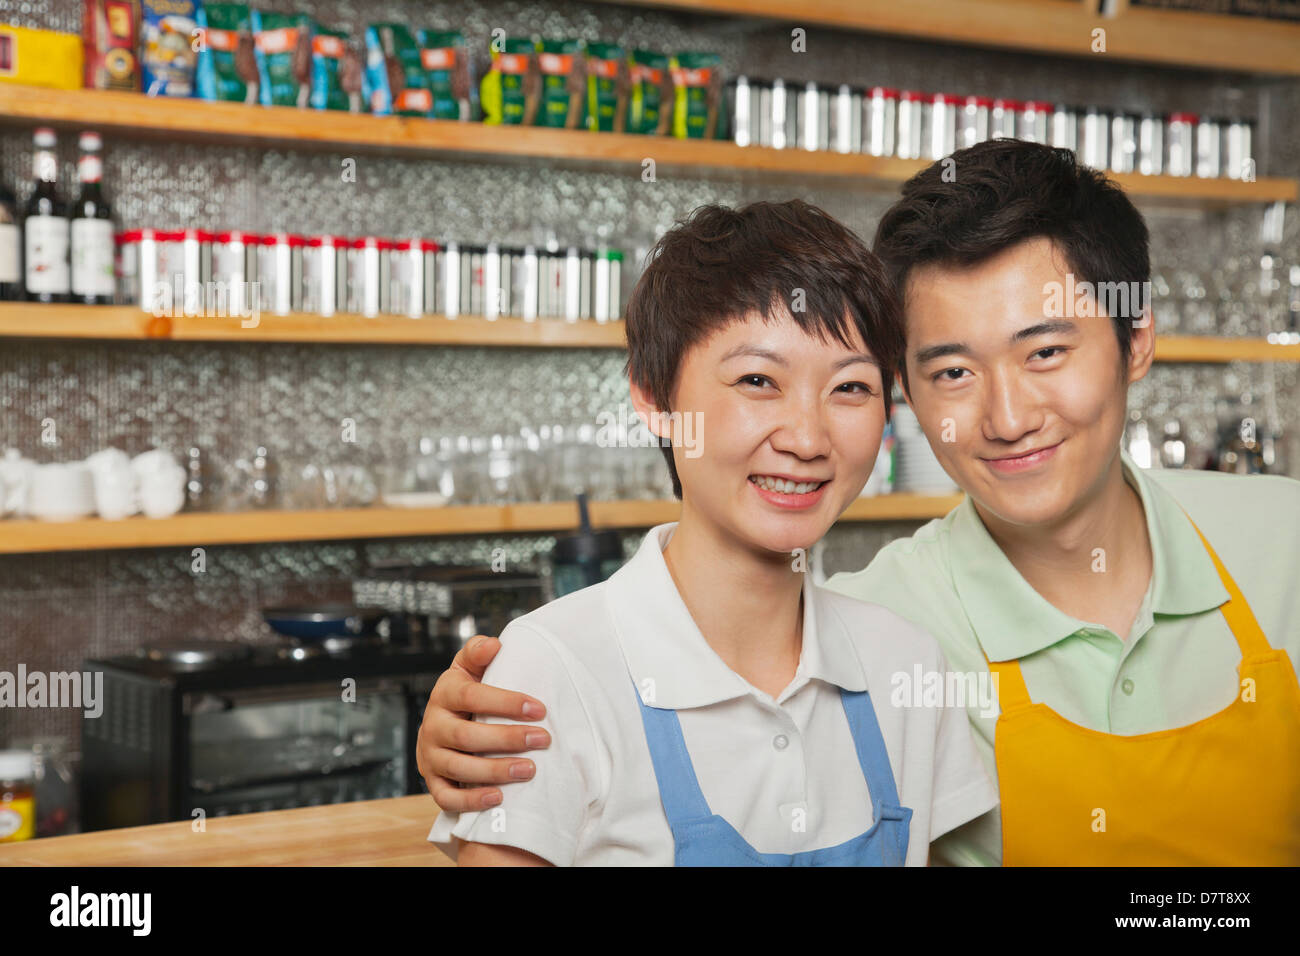 portrait-of-two-baristas-at-a-coffee-sho